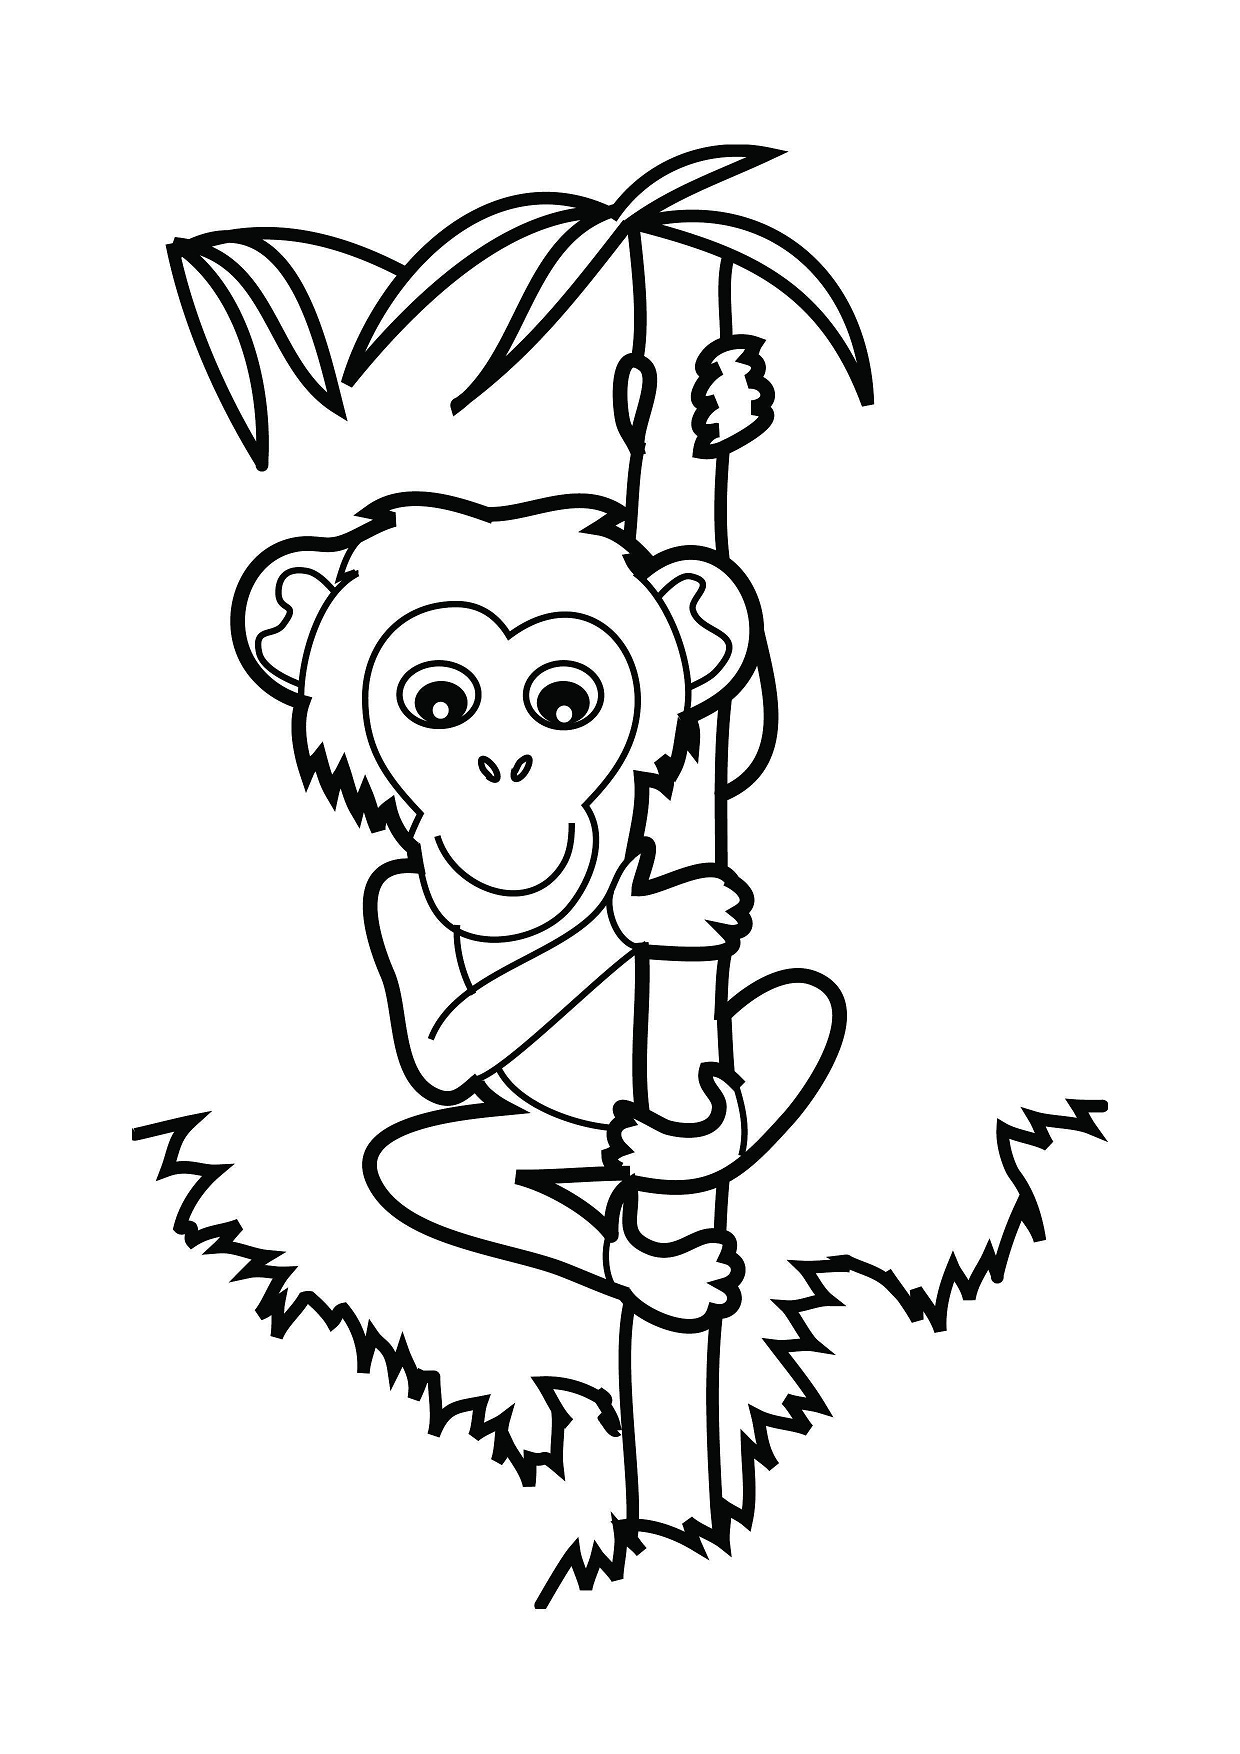 Click to see printable version of Escalada de Mono Coloring page